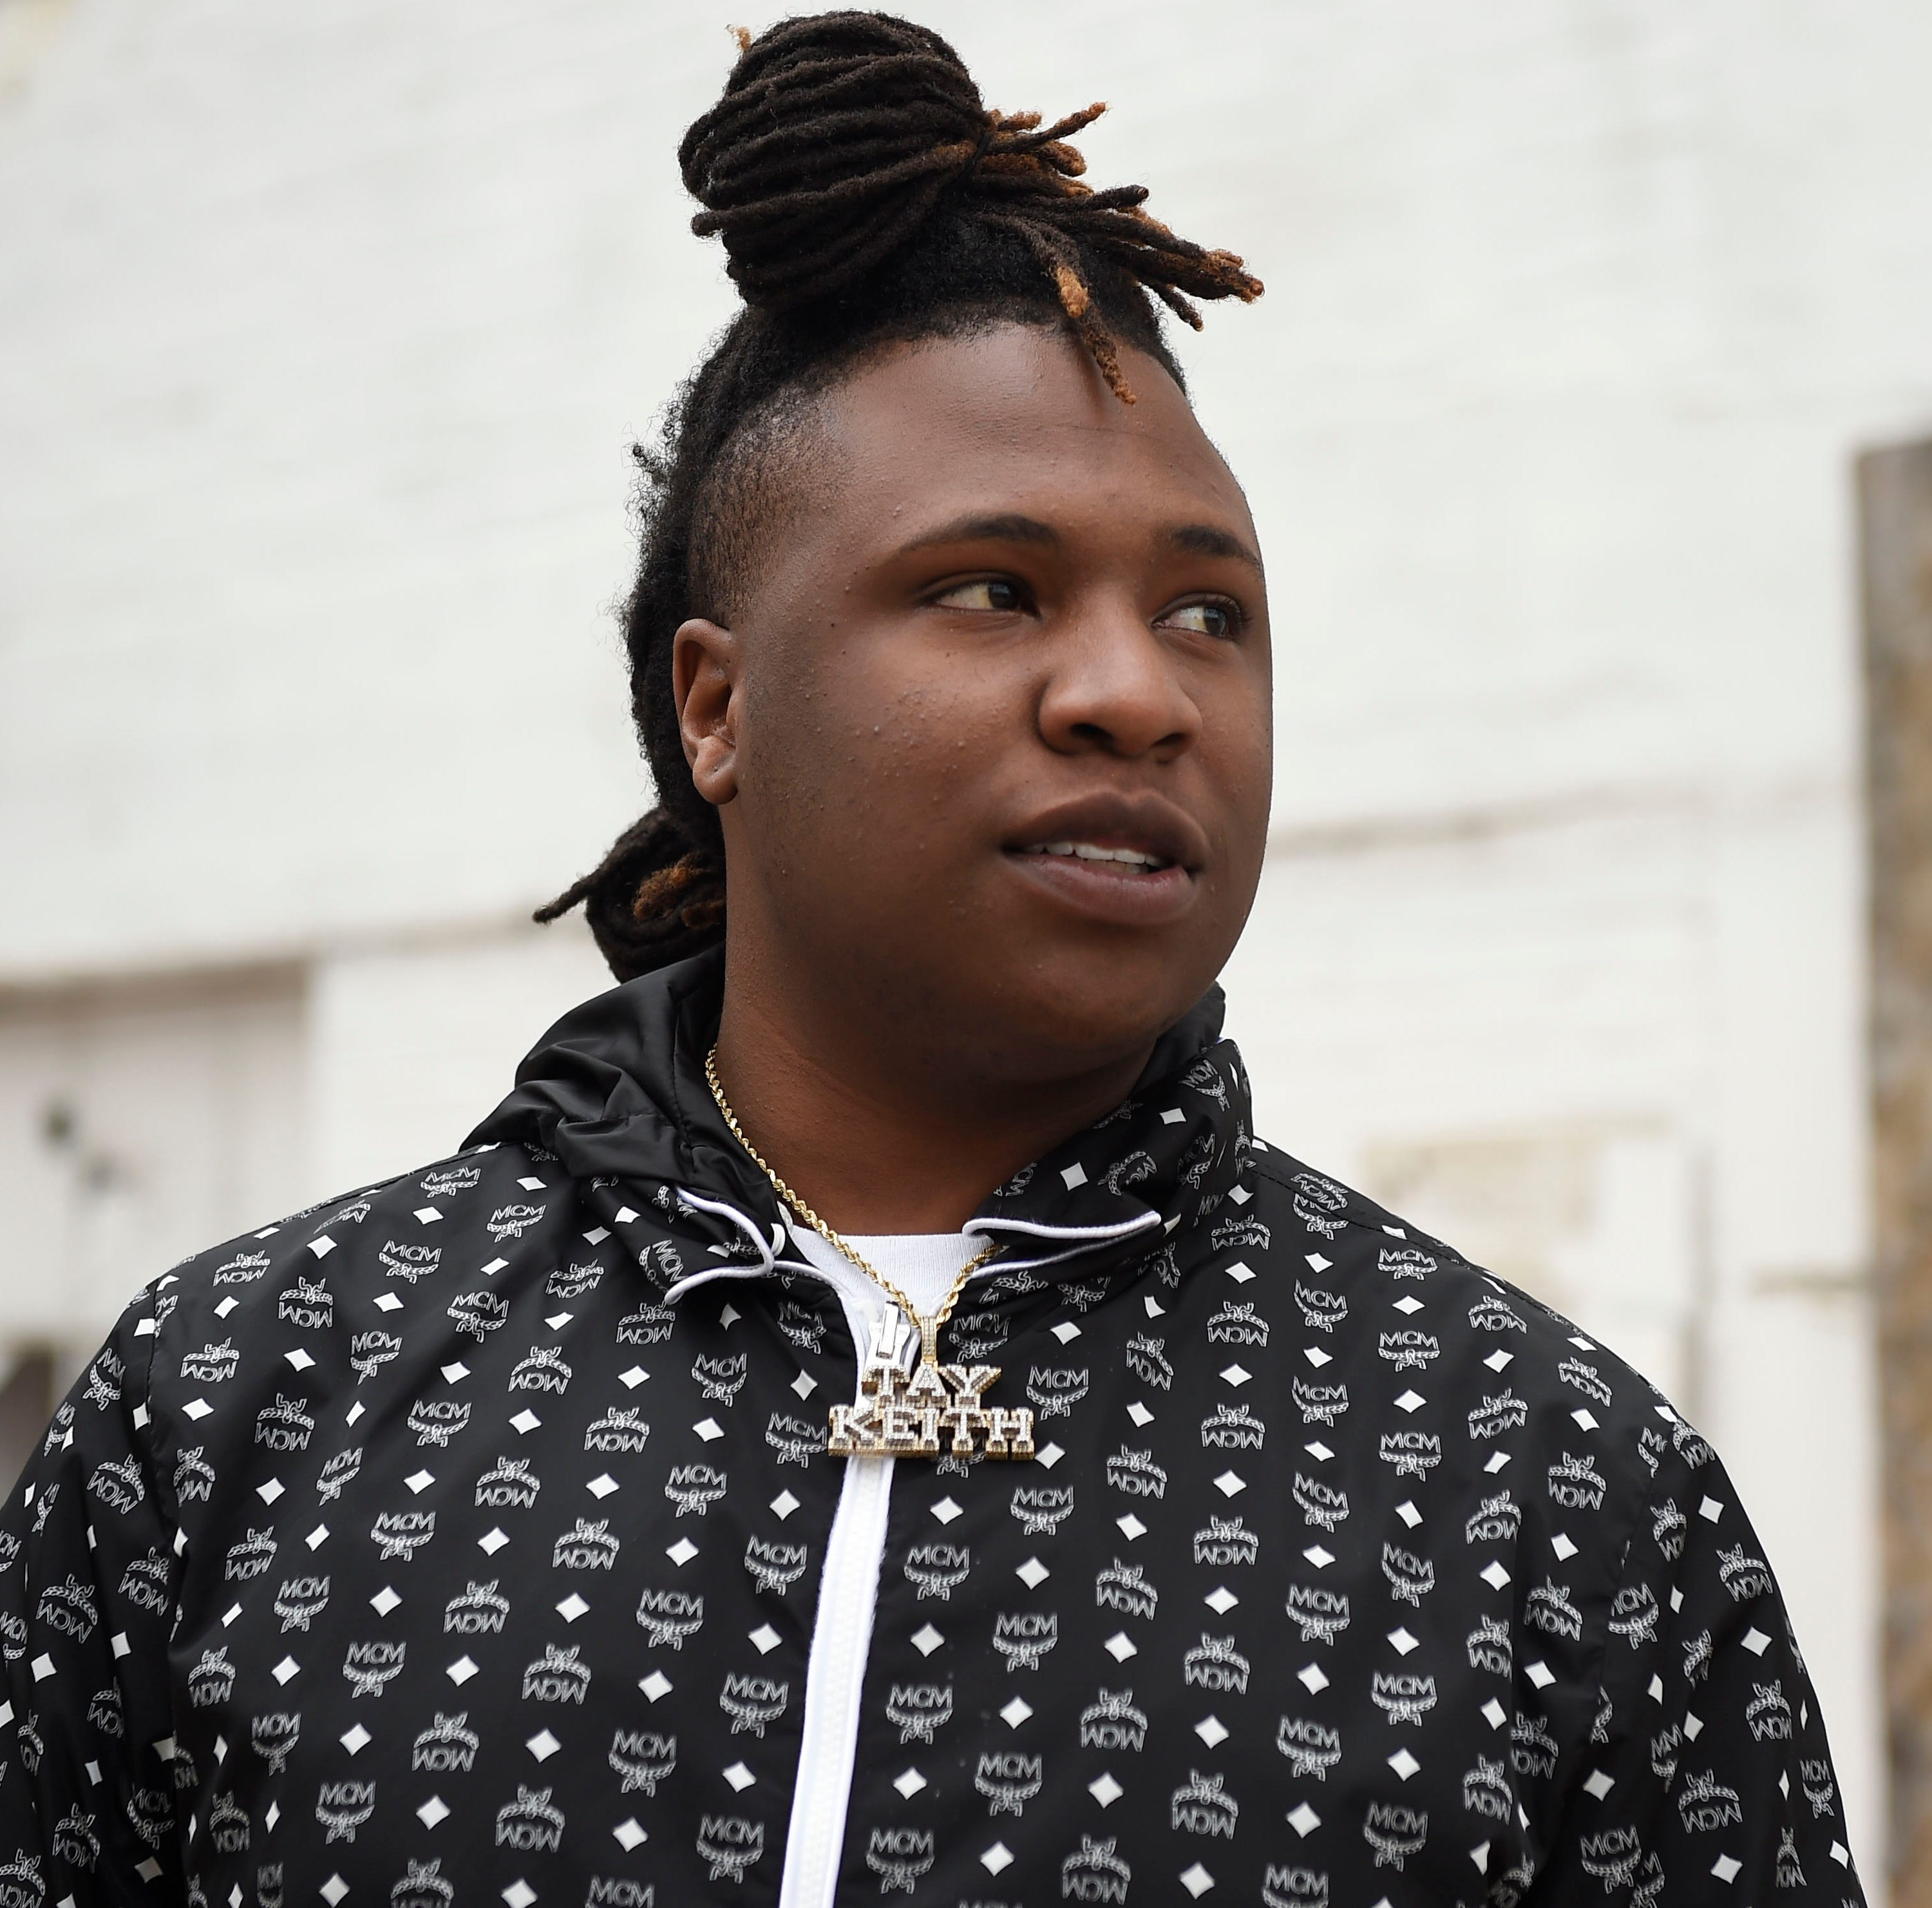 Tay Keith: Rap's hottest producer is graduating from MTSU